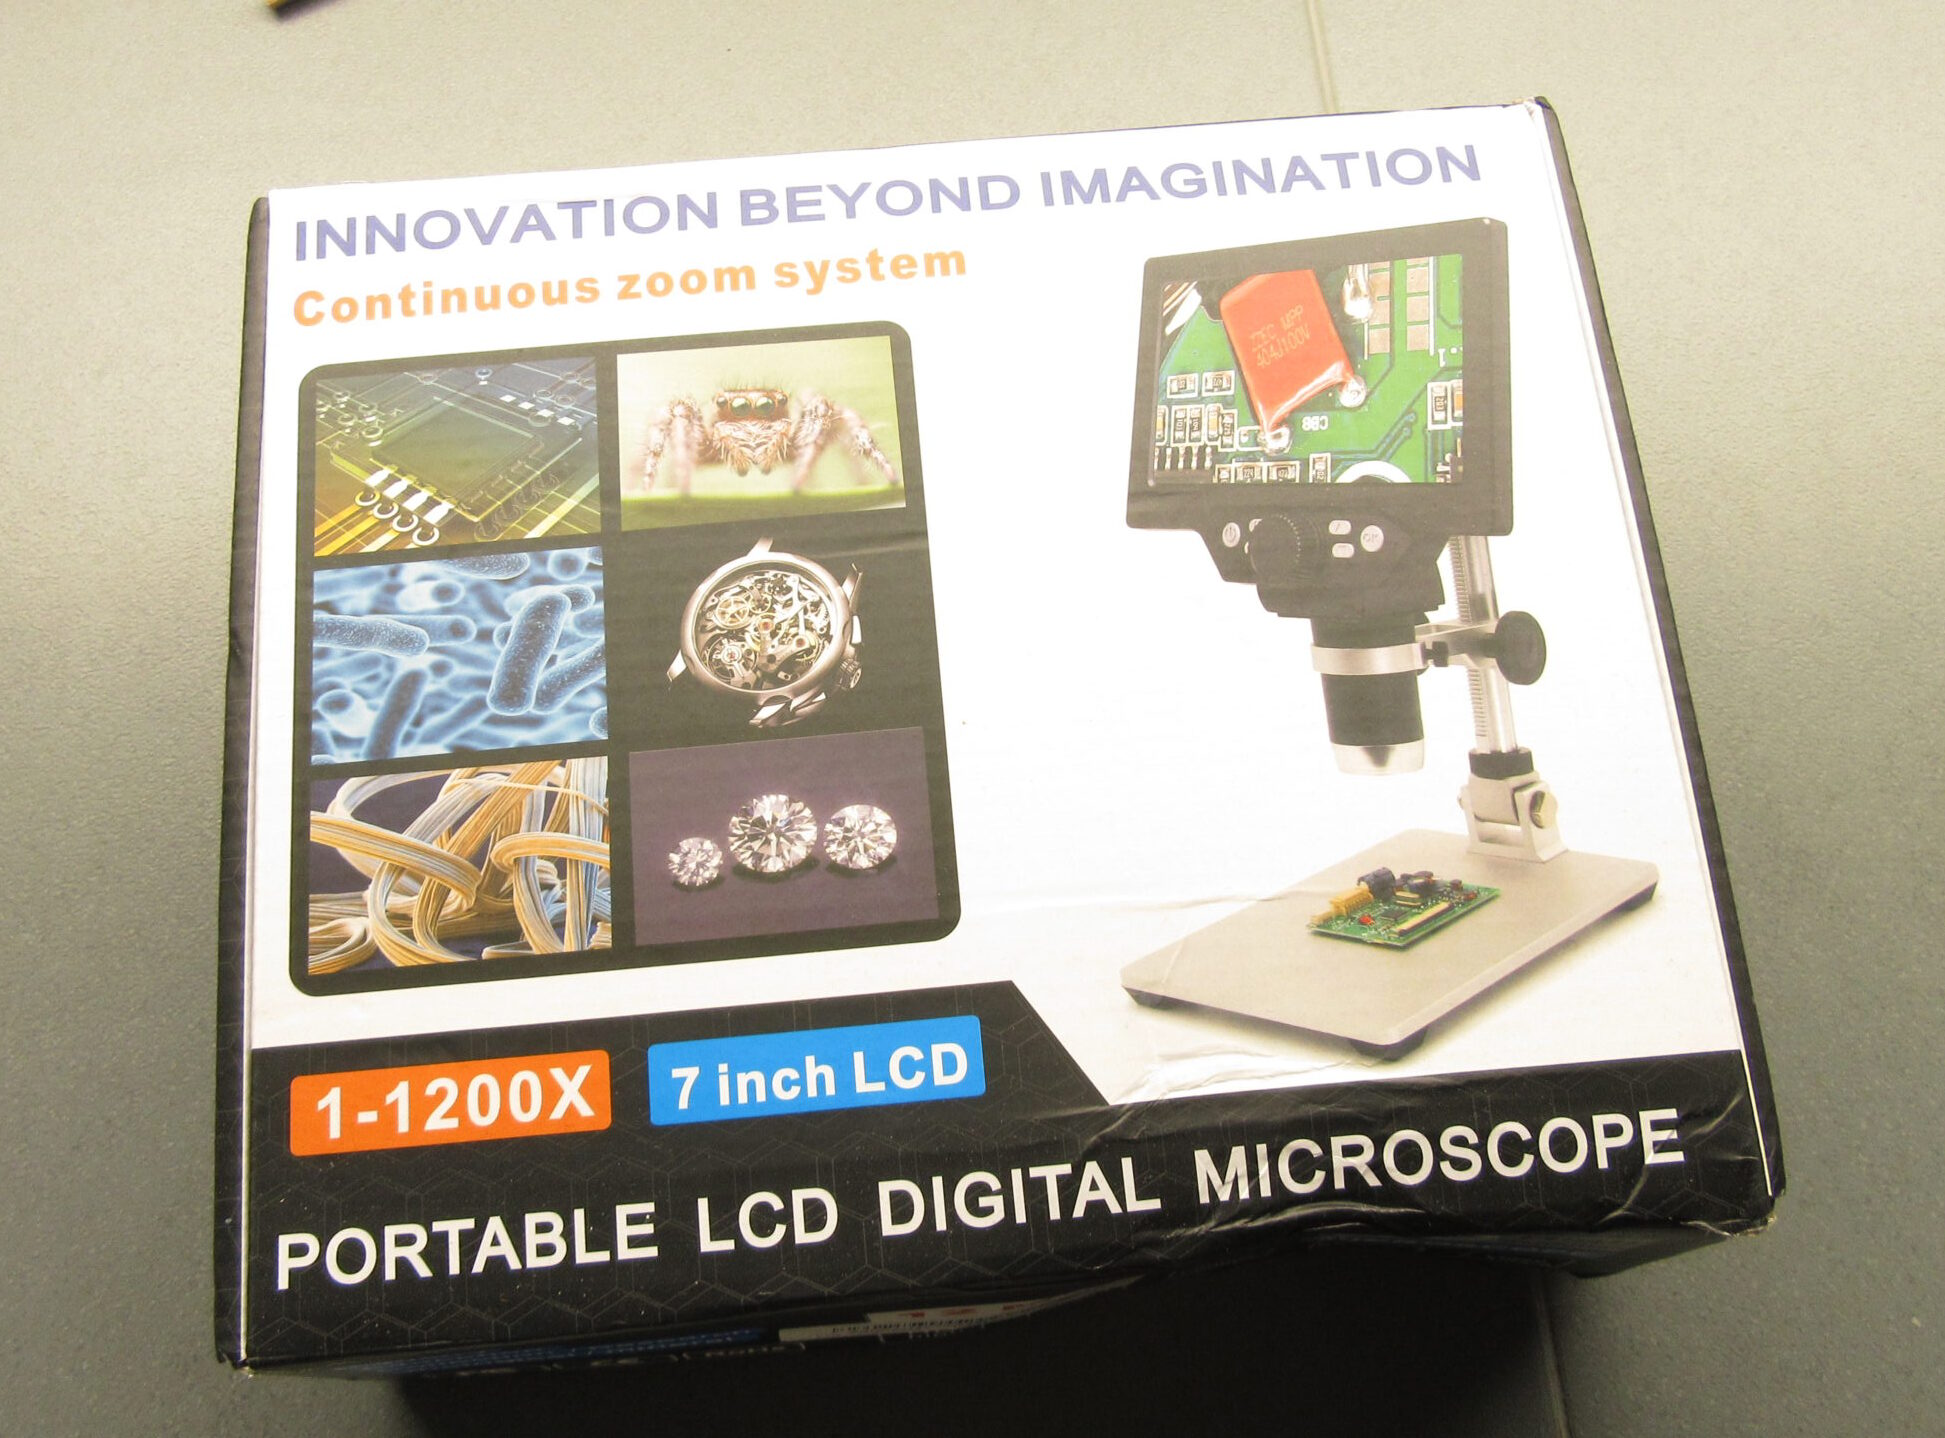 MUSTOOL G1200 Microscope Quick Review